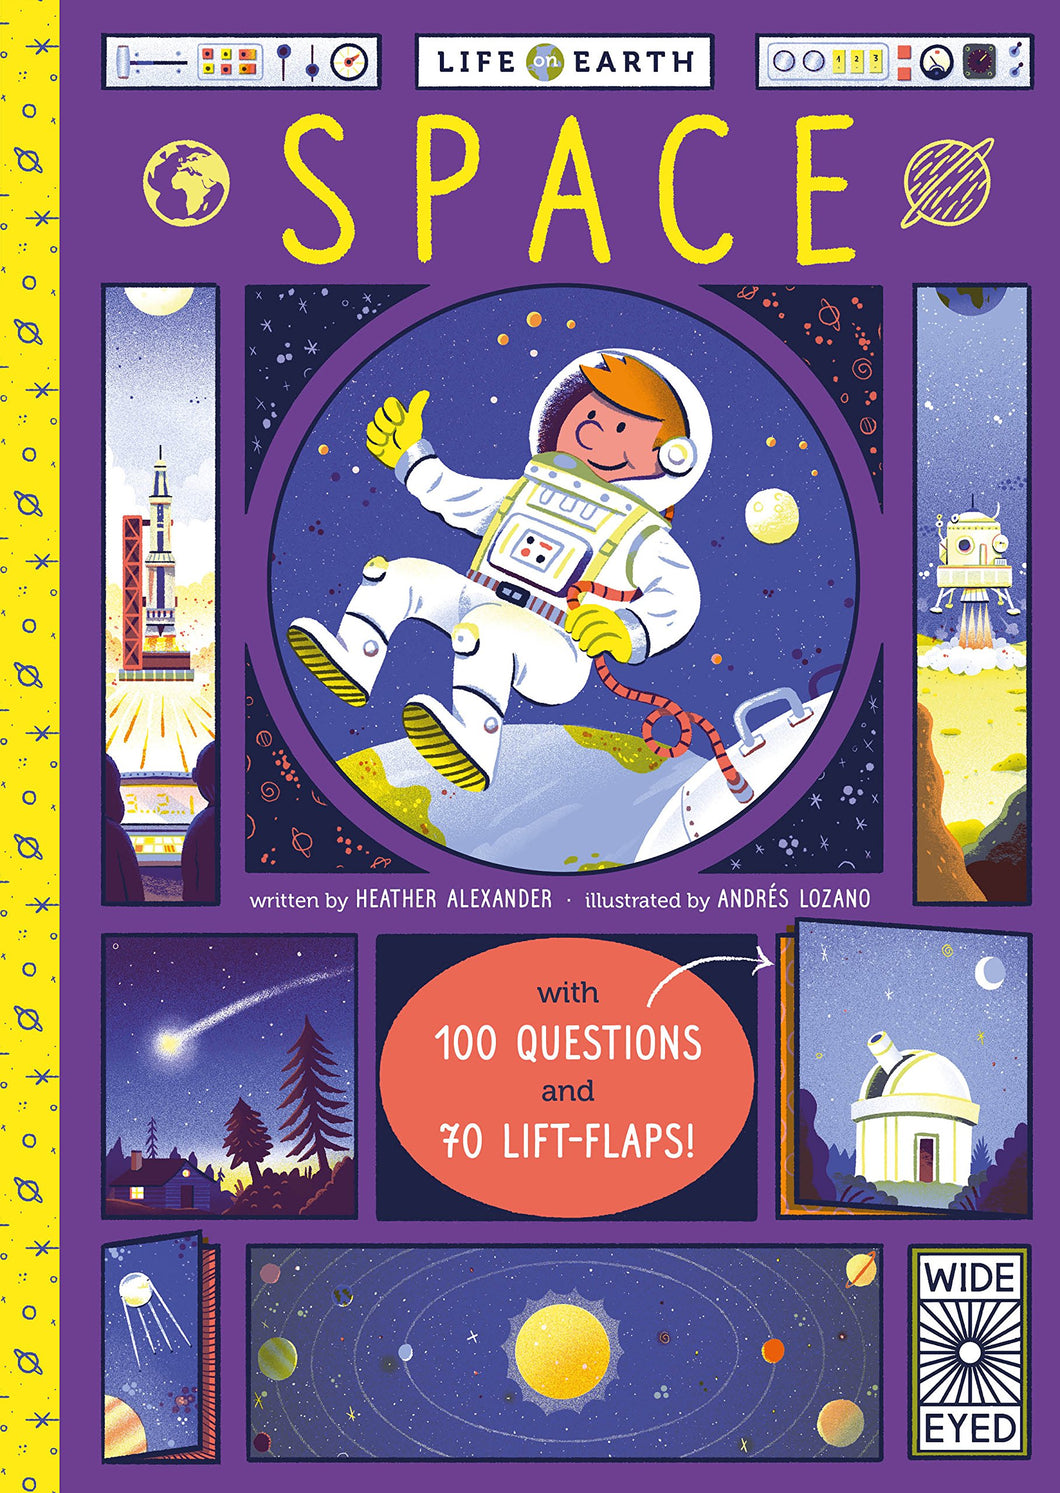 Life on Earth: Space - Me Books Asia Store